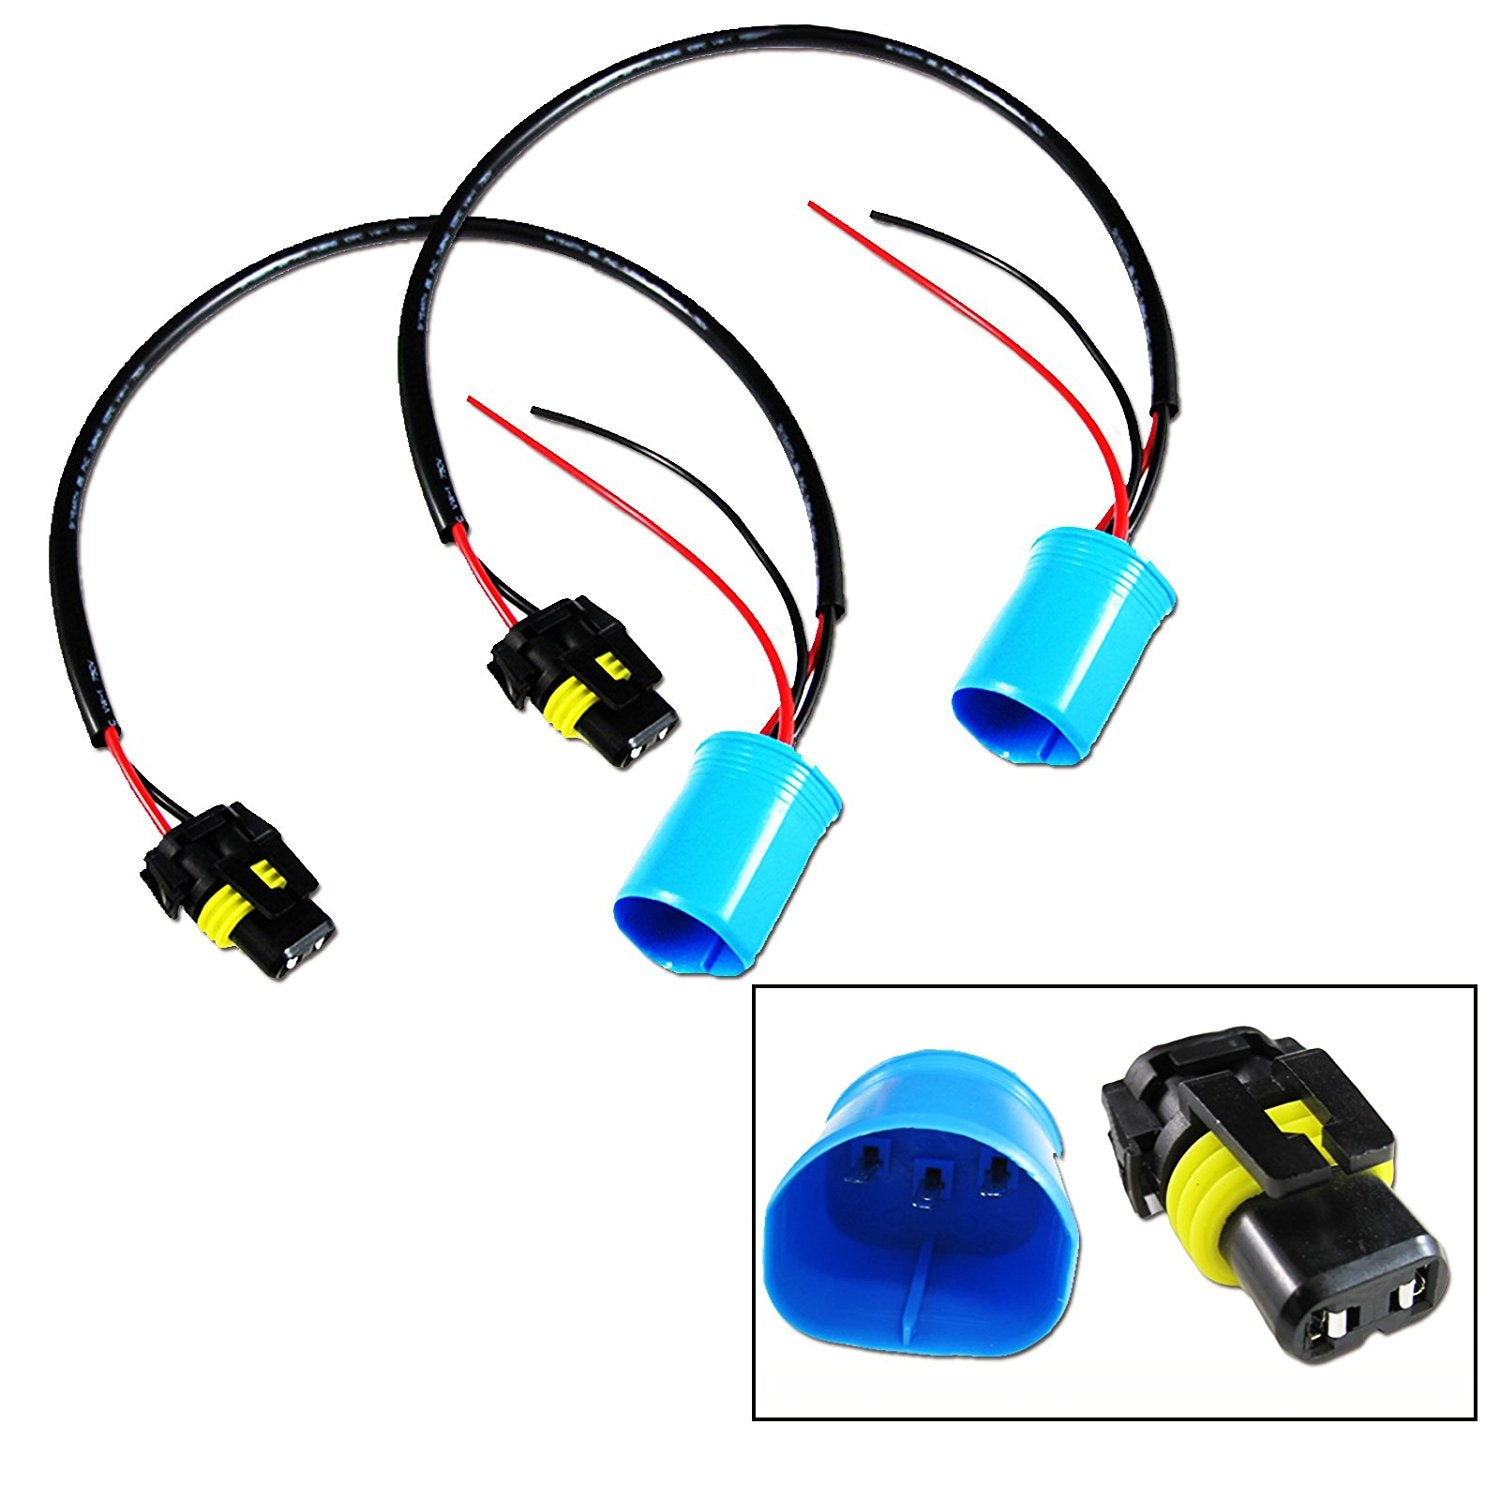 2x 9006 To 9007 Conversion Wires Adapters Headlight Retrofit ... Wiring on